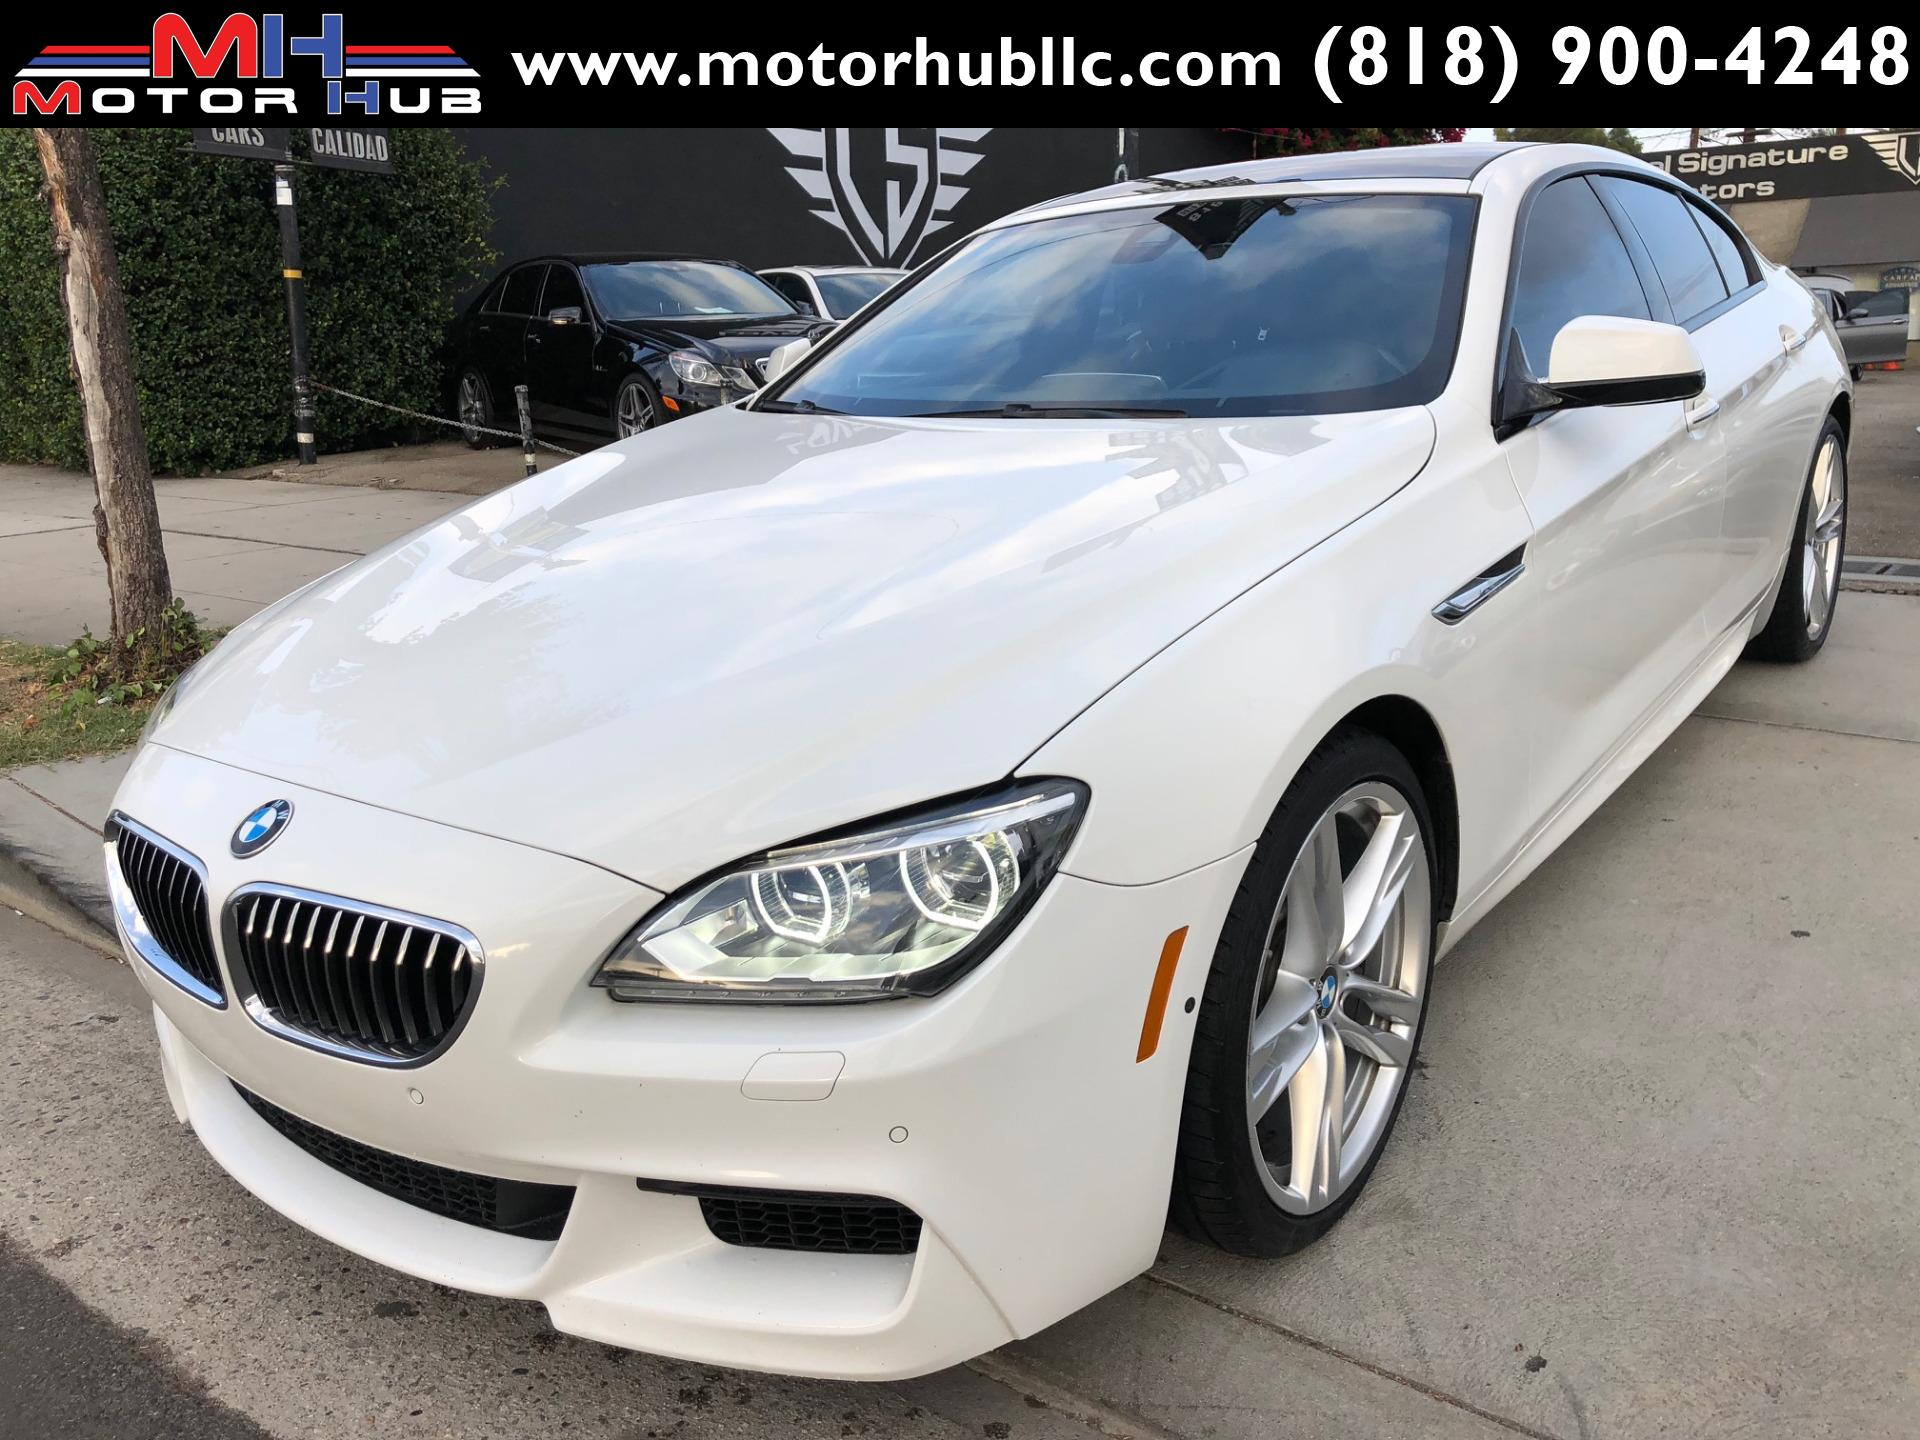 2015 Bmw 6 Series 640 Gran Coupe Stock B53762 For Sale